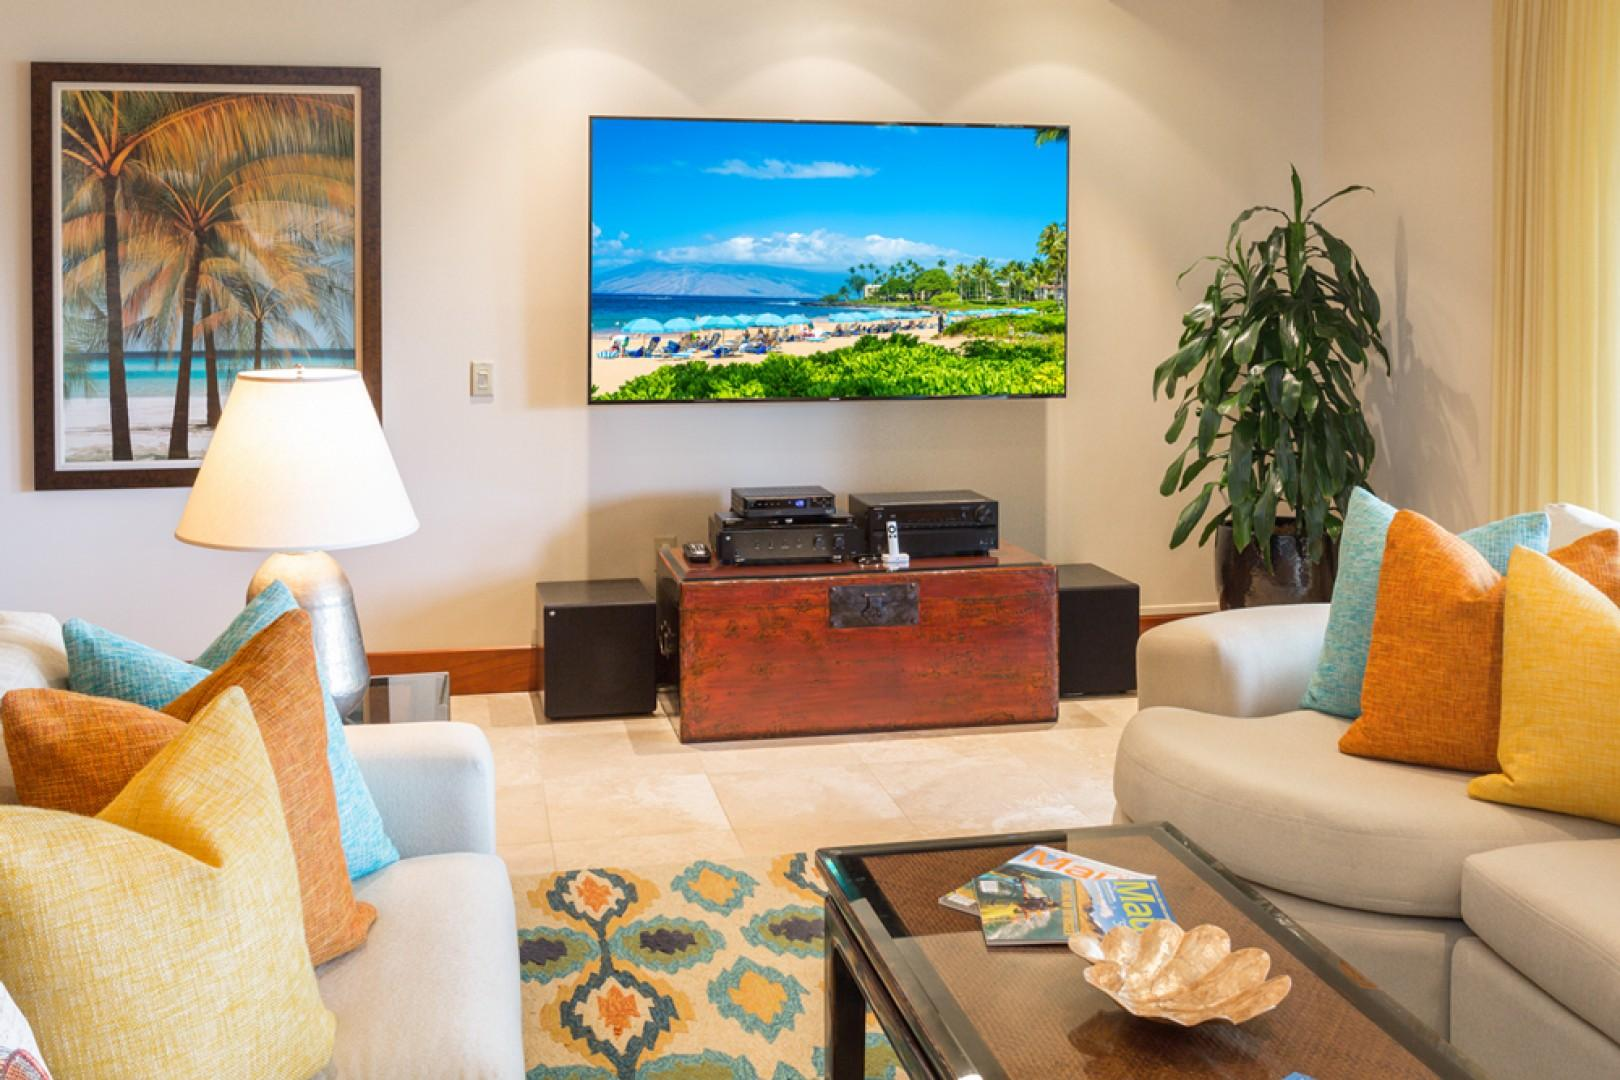 Castaway Cove C201 - Ocean View Great Room and Entertainment Center with HD TV, CD/DVD, iPod Dock, Large Flat Panel TV